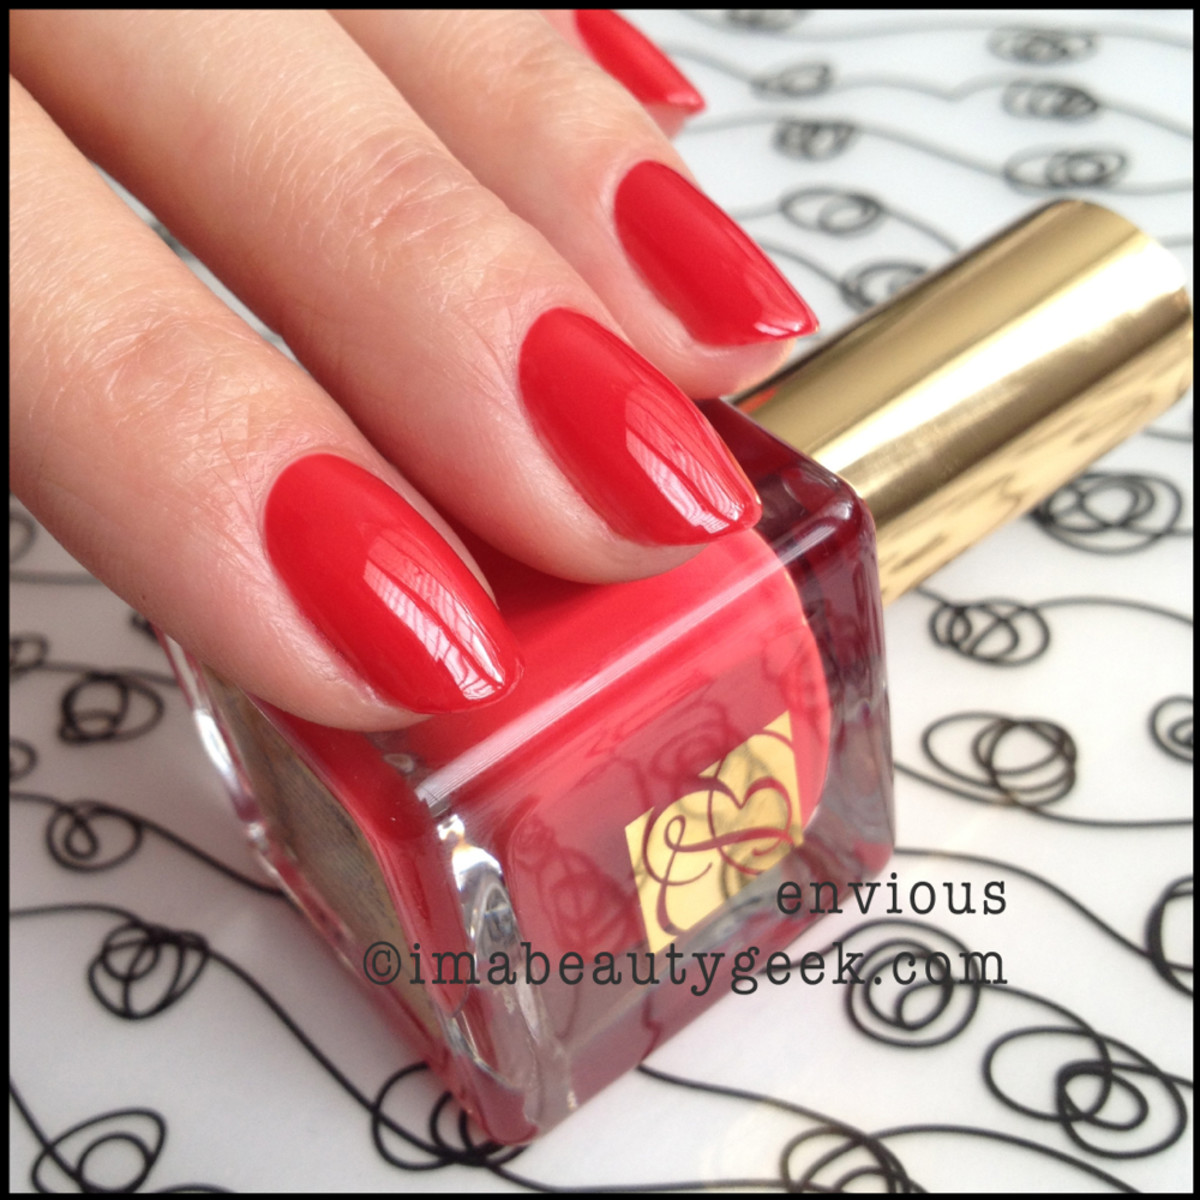 Estee Lauder polish Envious